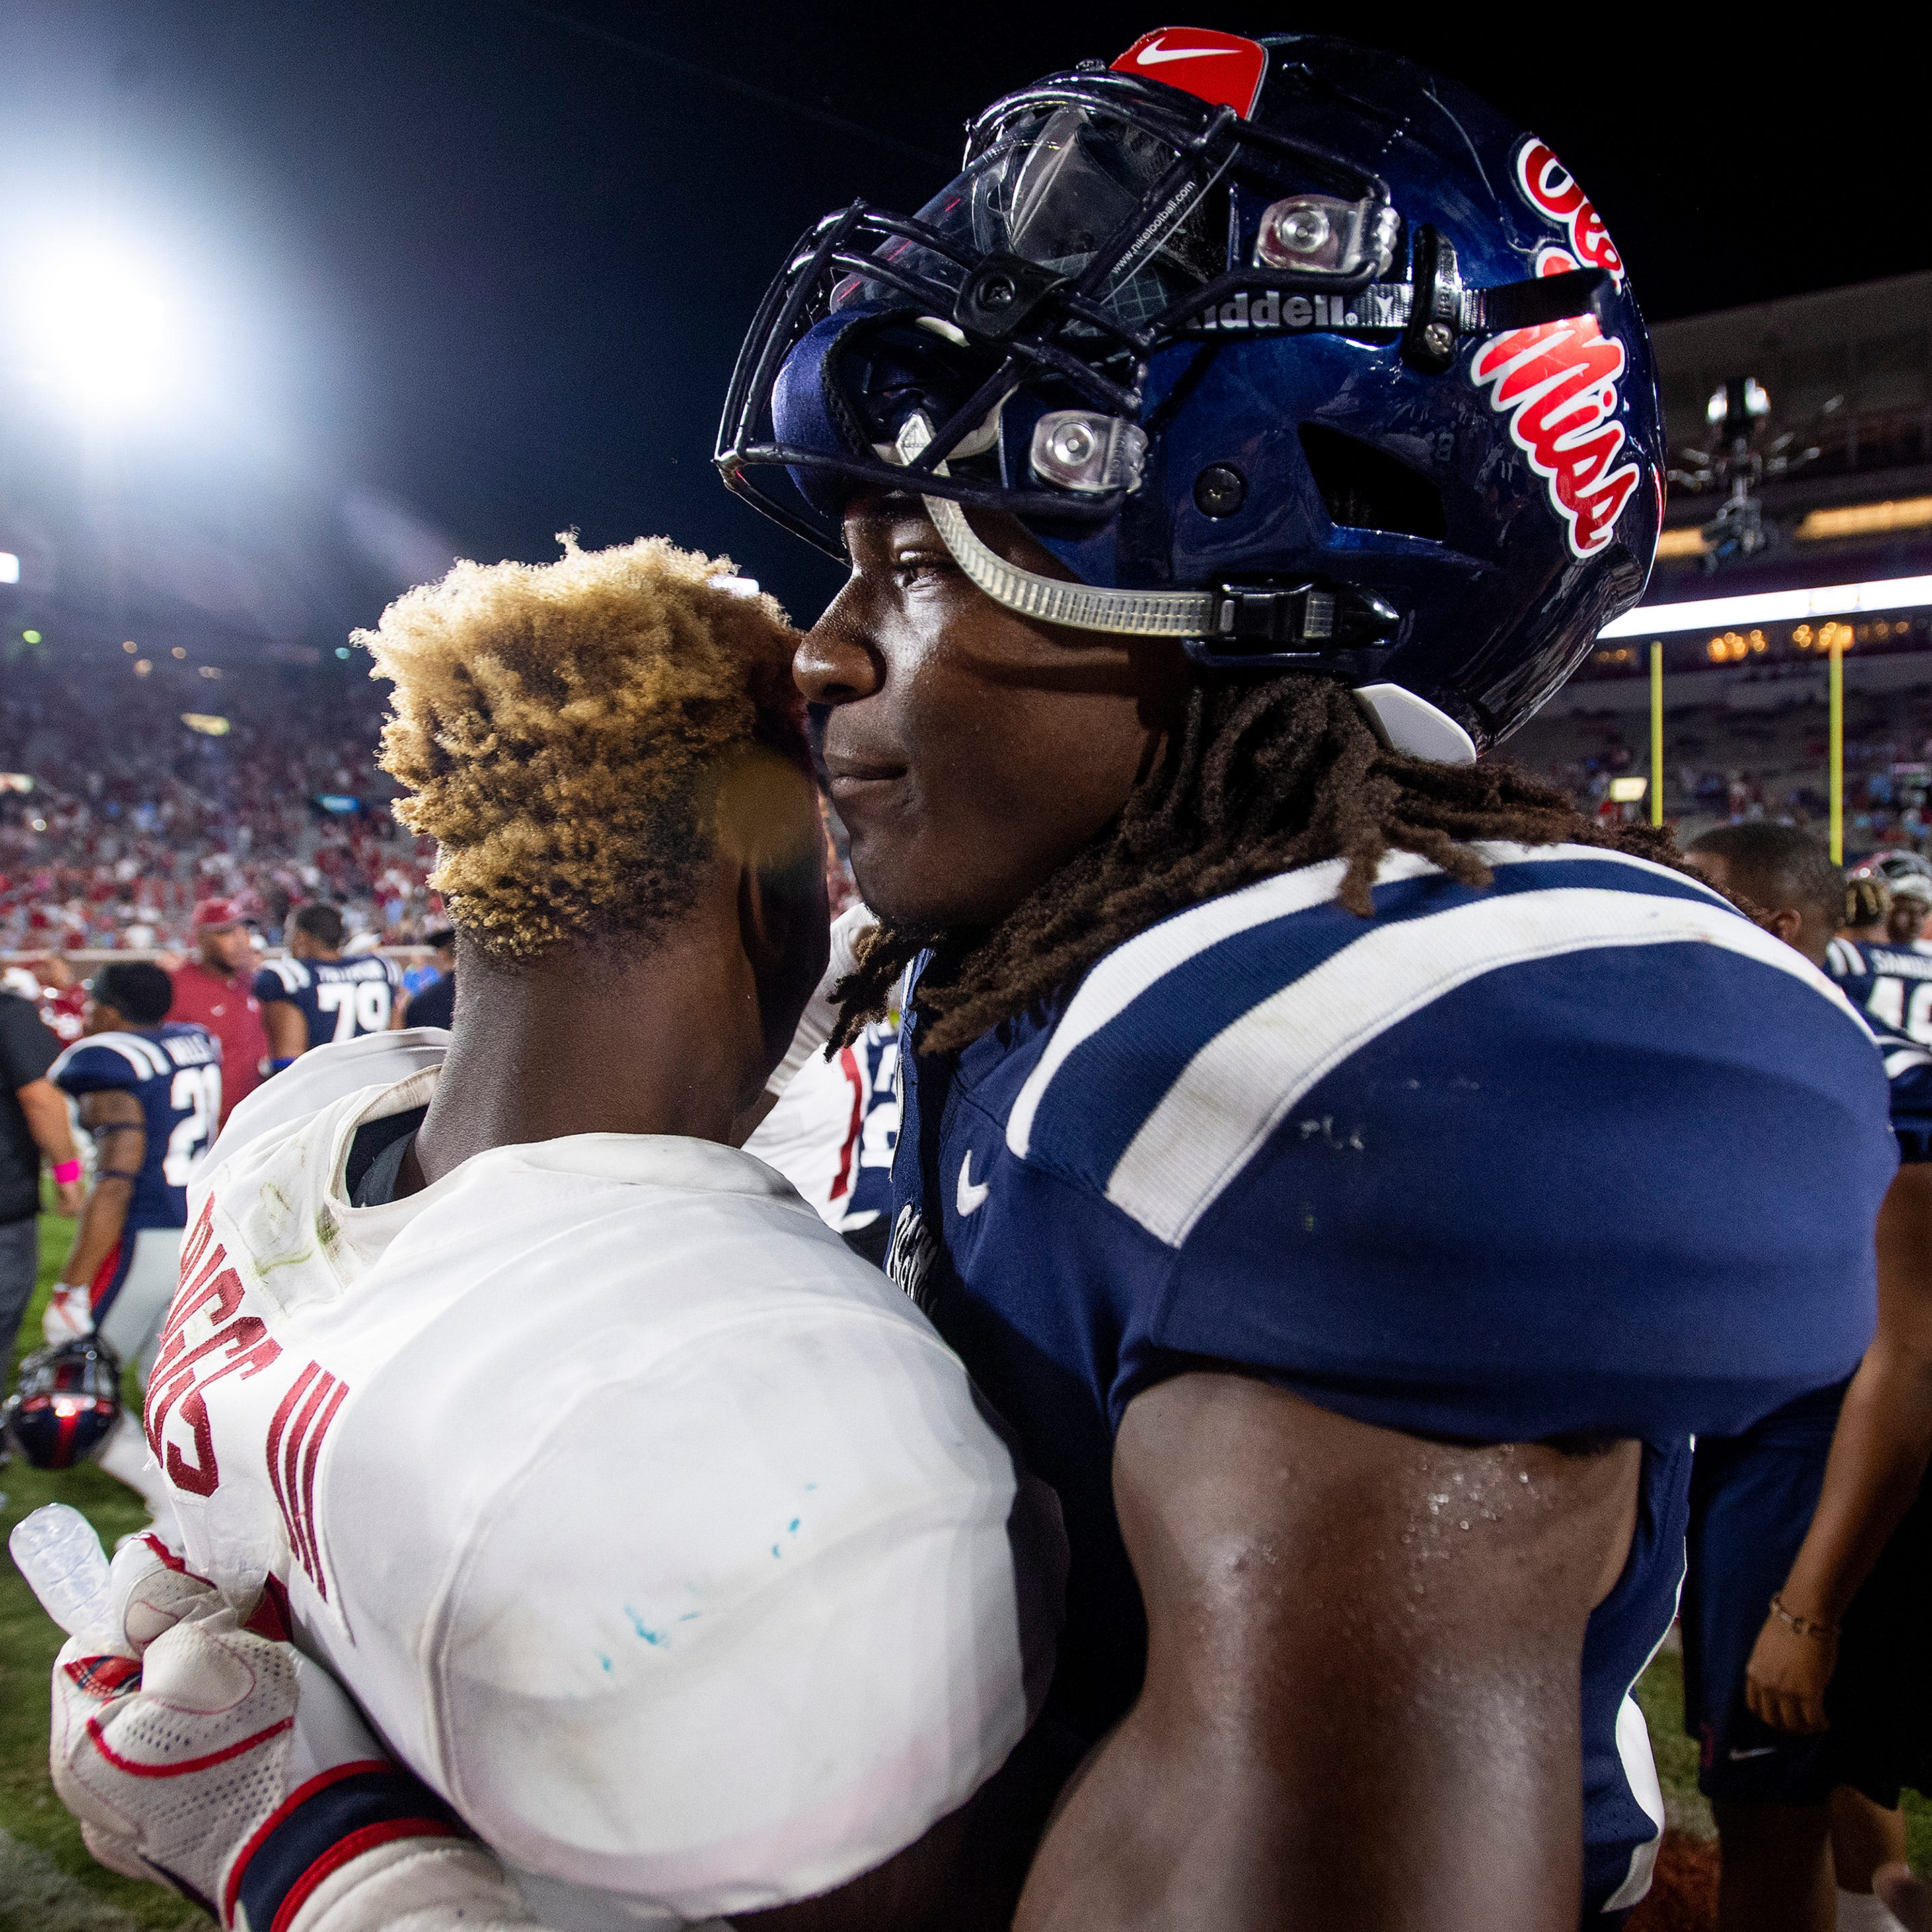 Ole Miss linebacker Kevontae Ruggs to transfer for 'personal' reasons